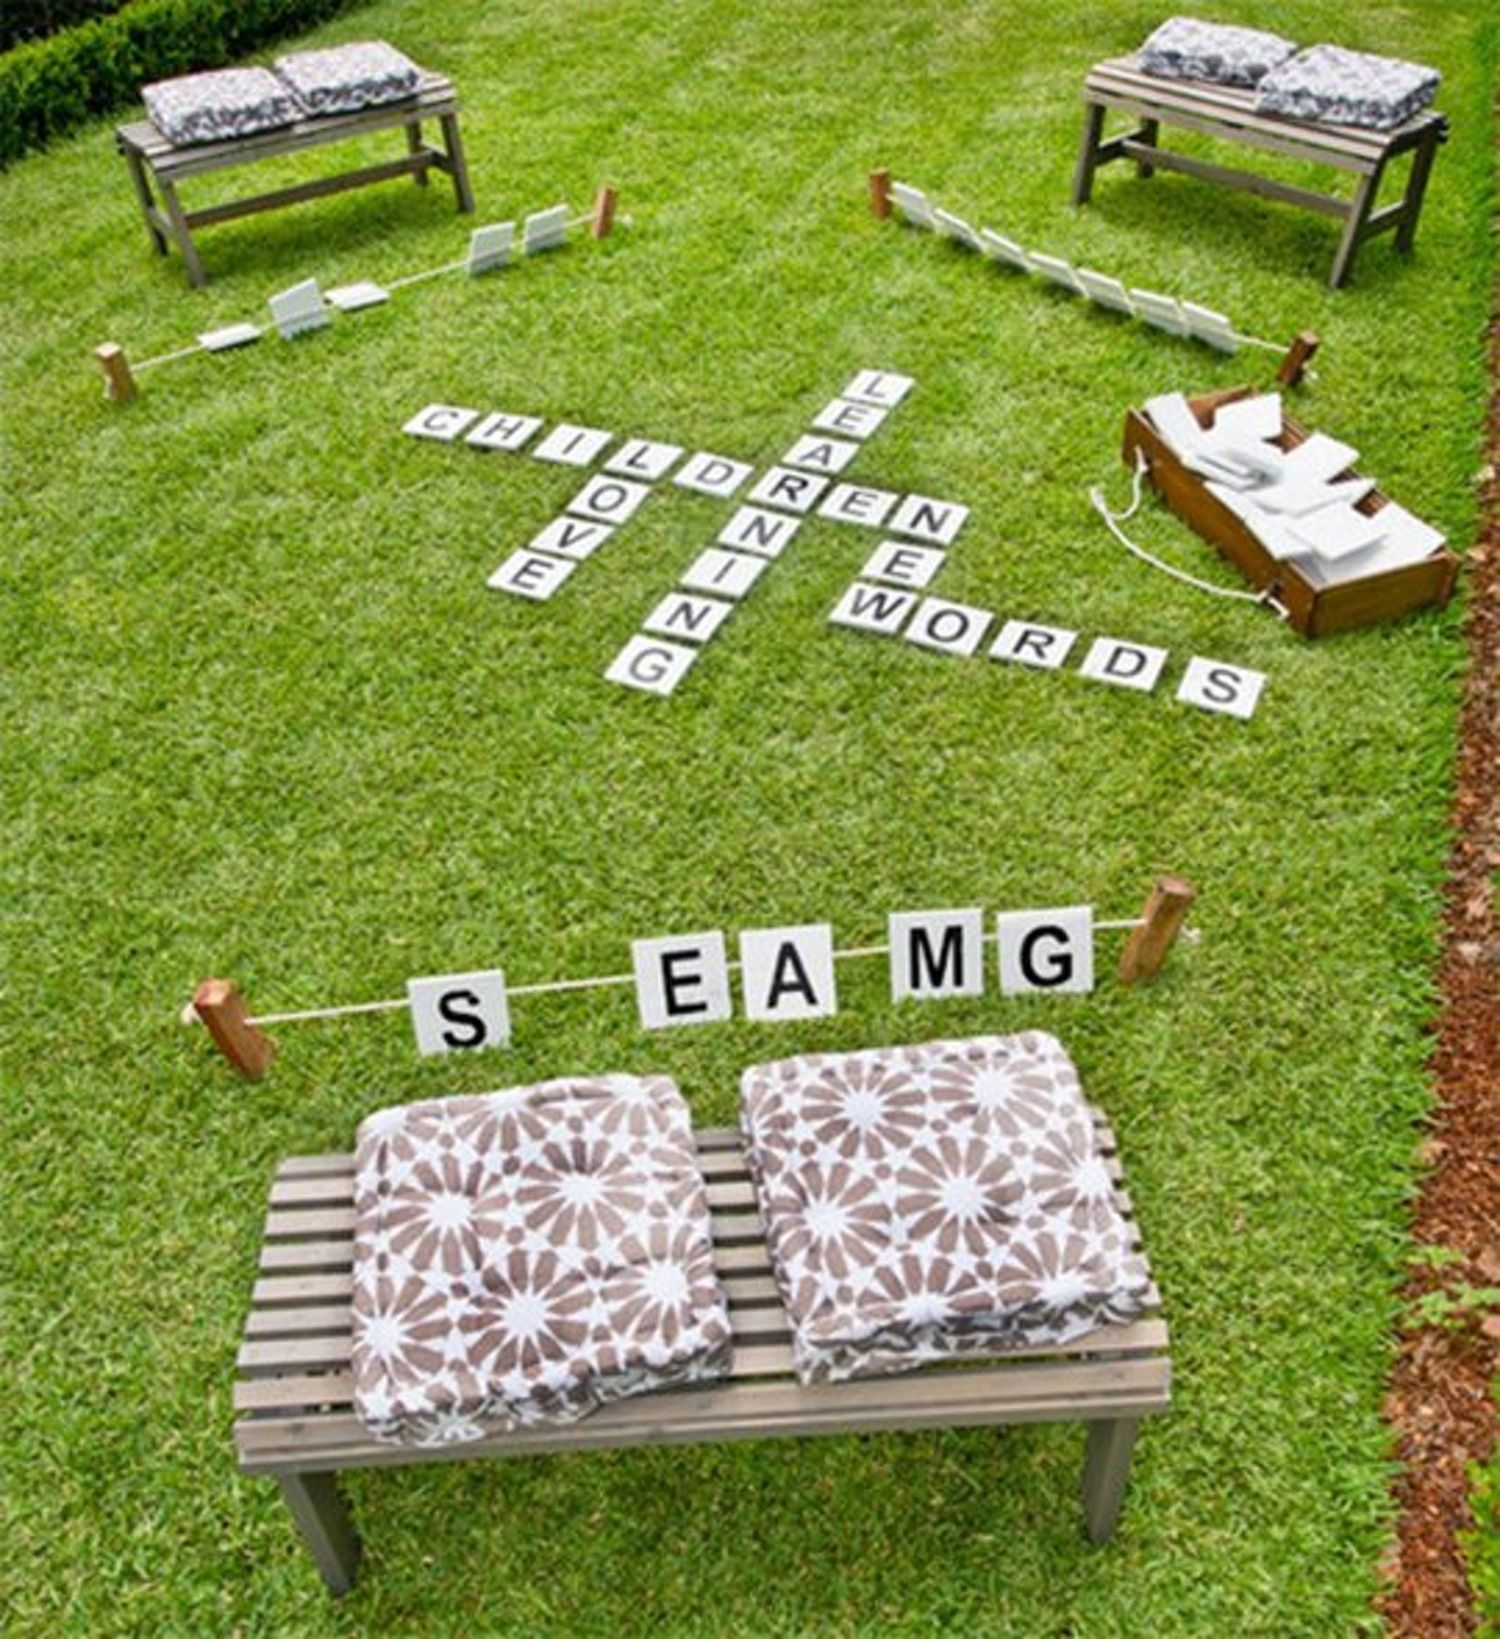 make it 5 diy lawn games lawn game and diy and crafts